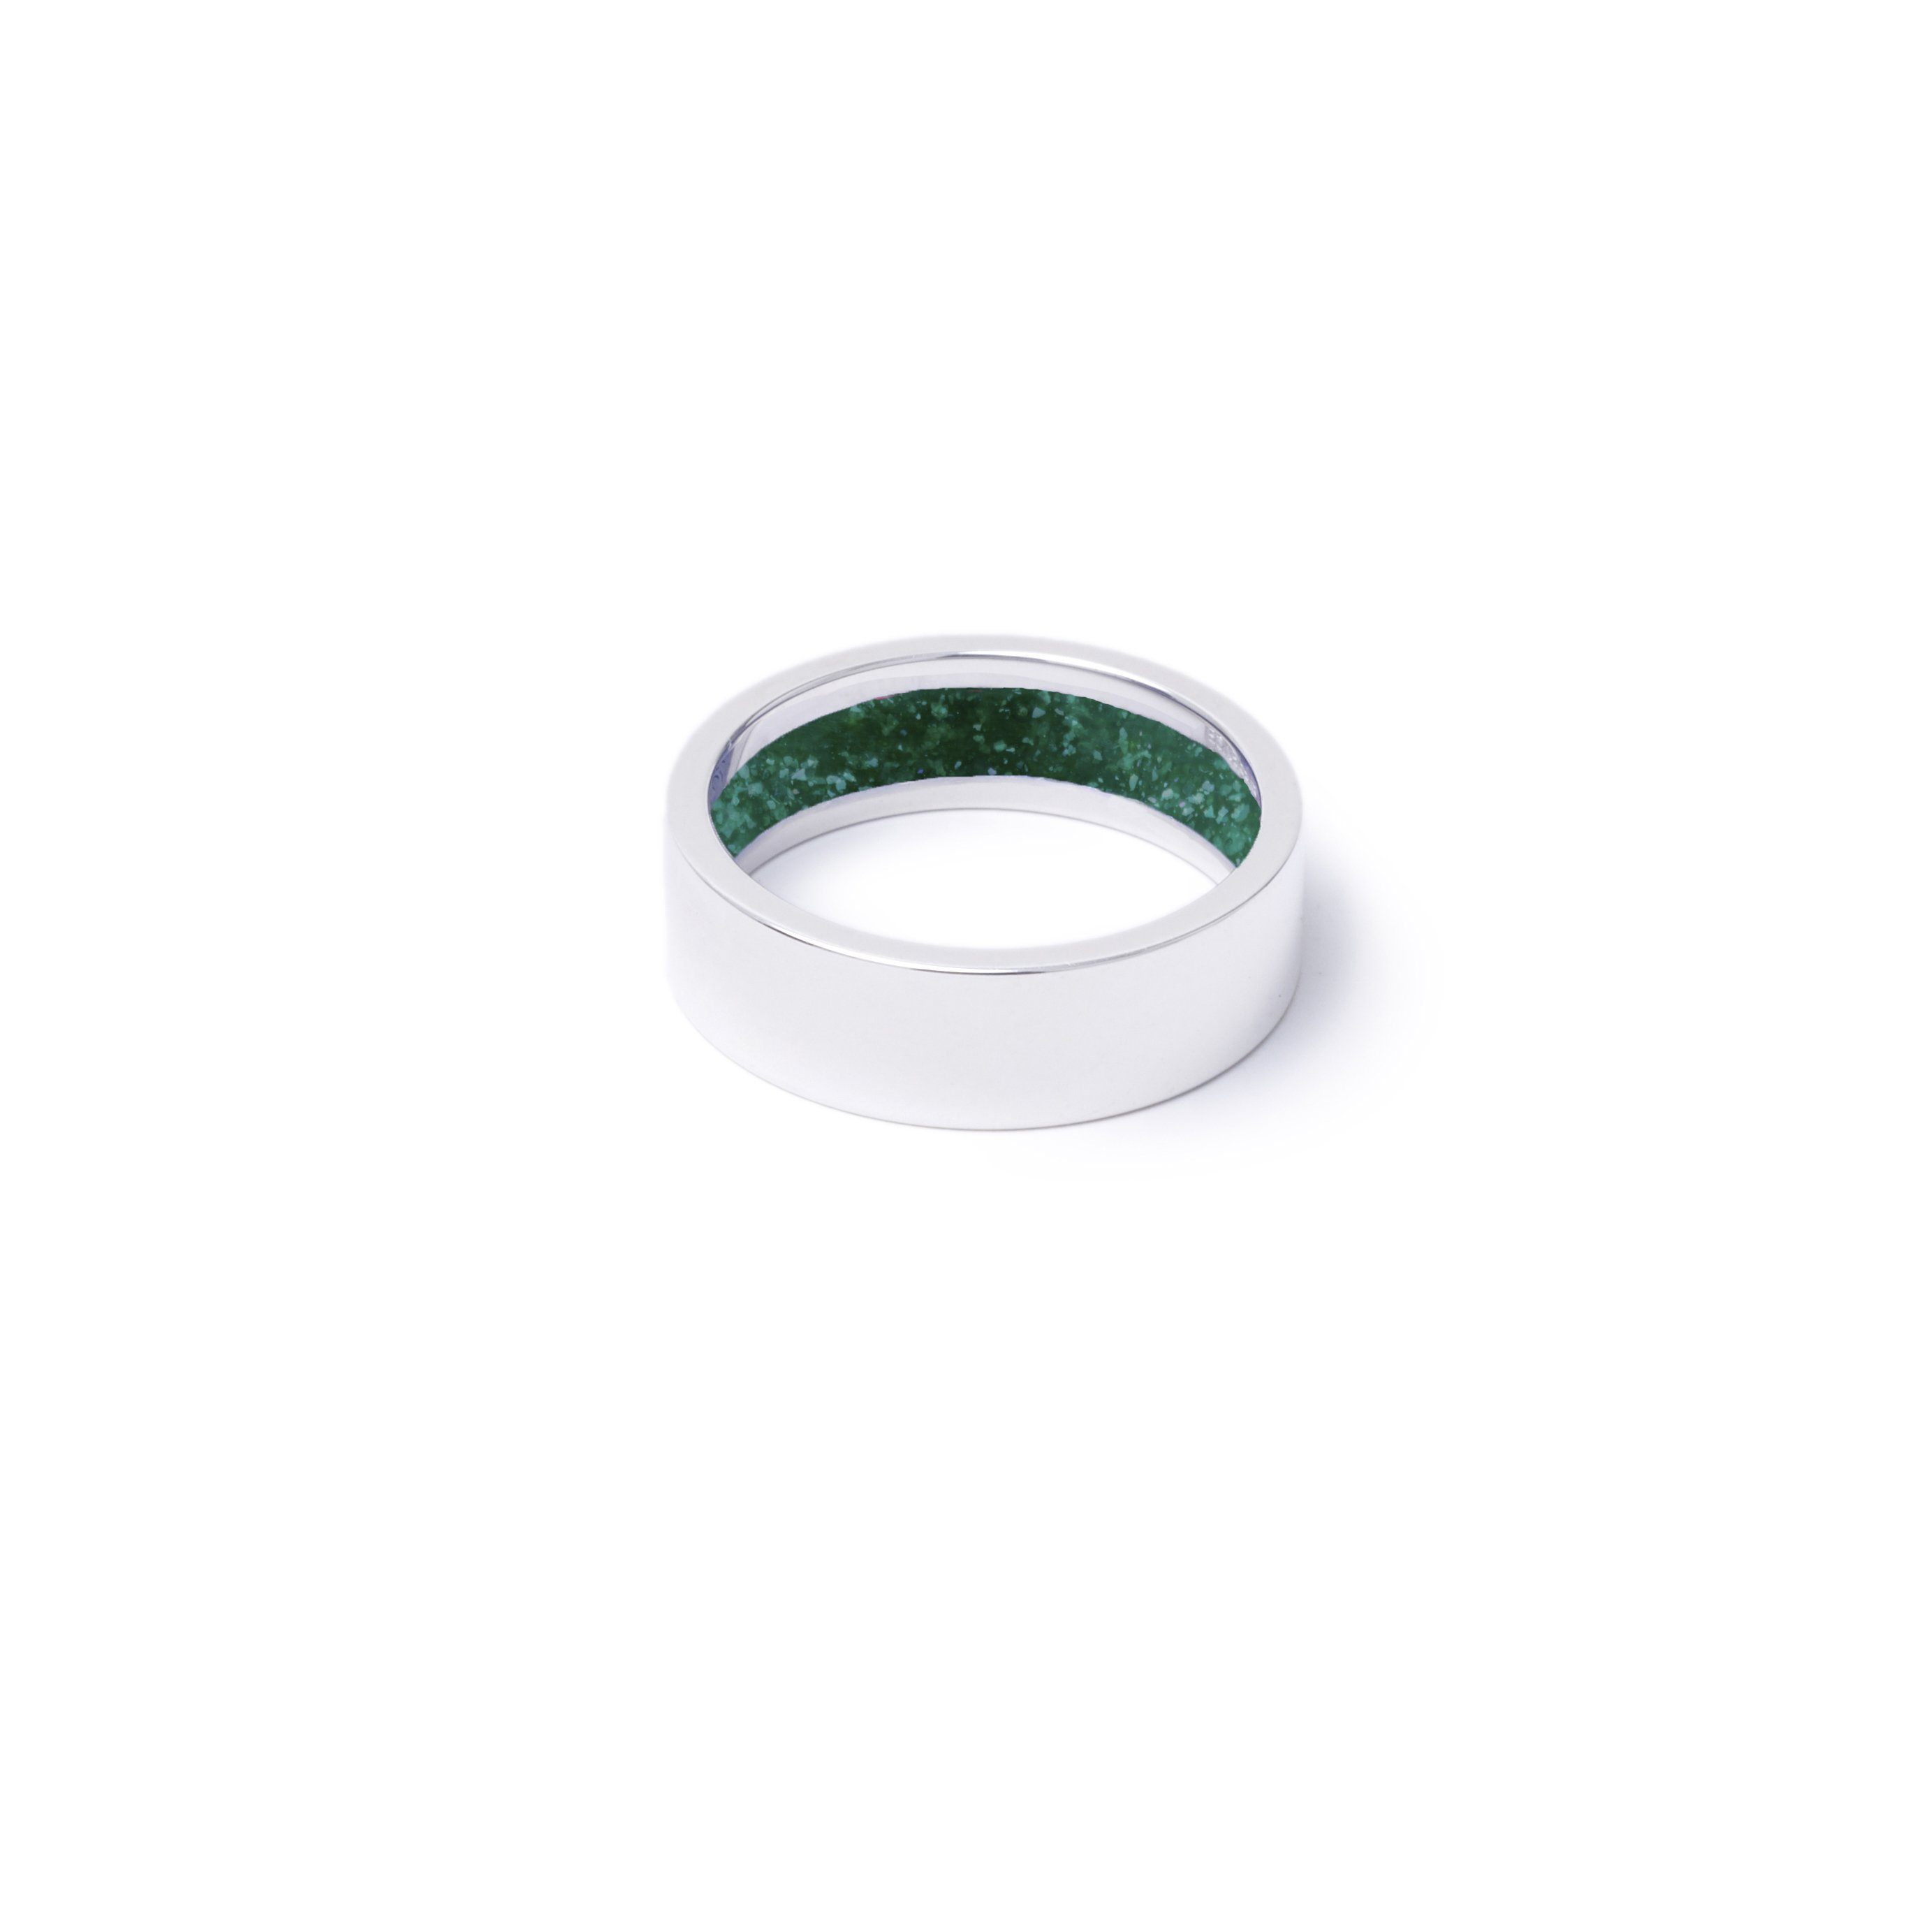 Everence Ring, Sterling Silver everence.life 6mm Emerald